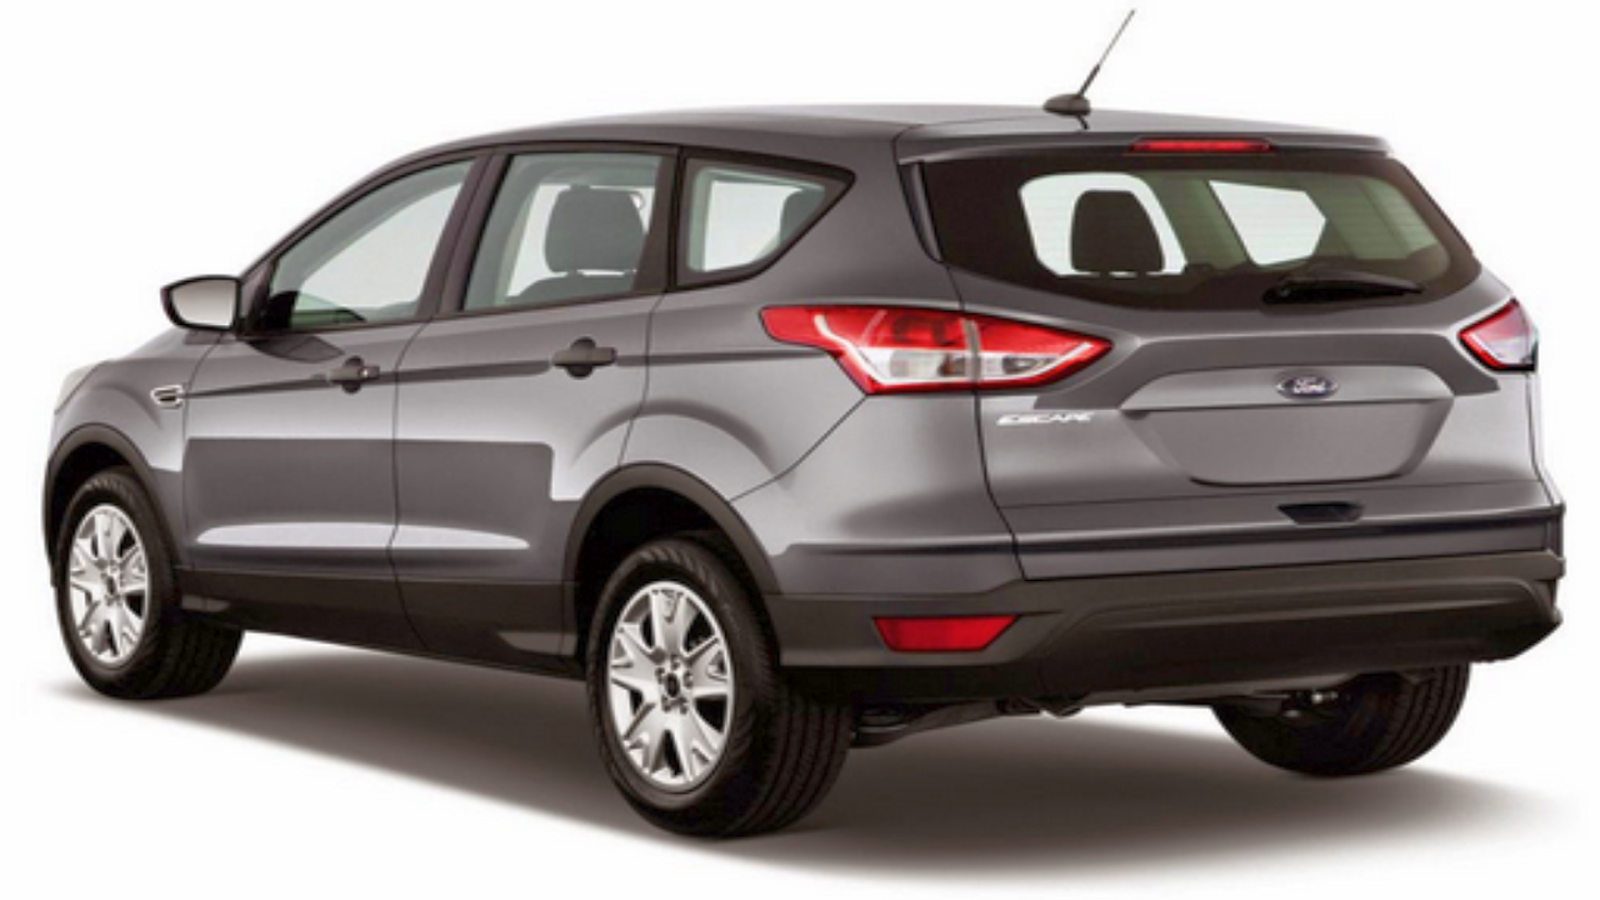 2018 ford escape titanium price release date and review ford escape manual